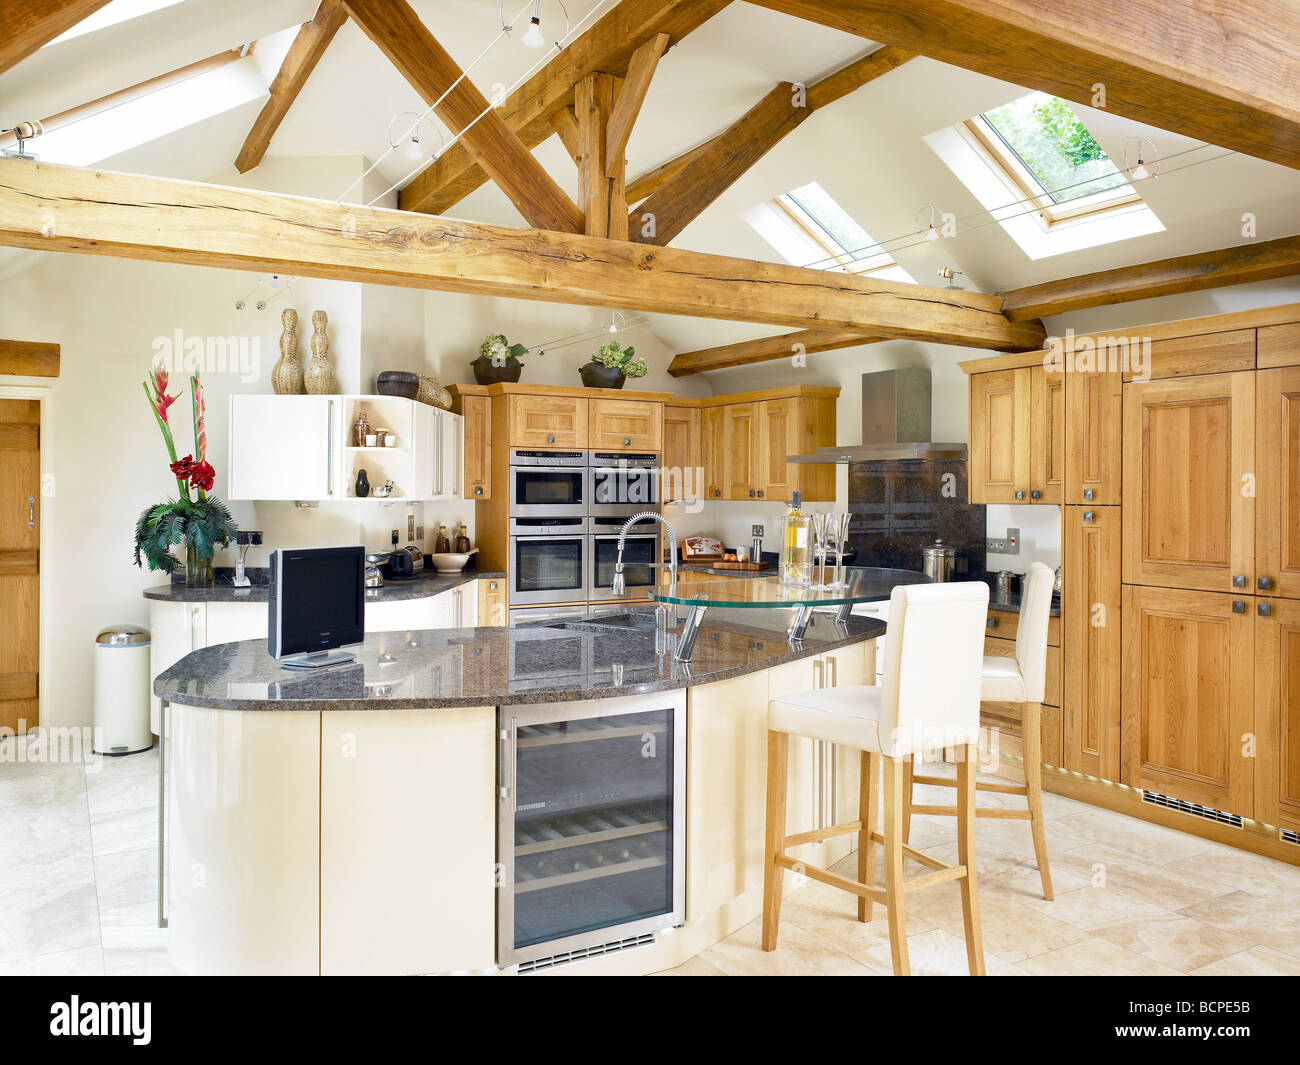 A Large Open Plan Kitchen Interior With Oak Beams